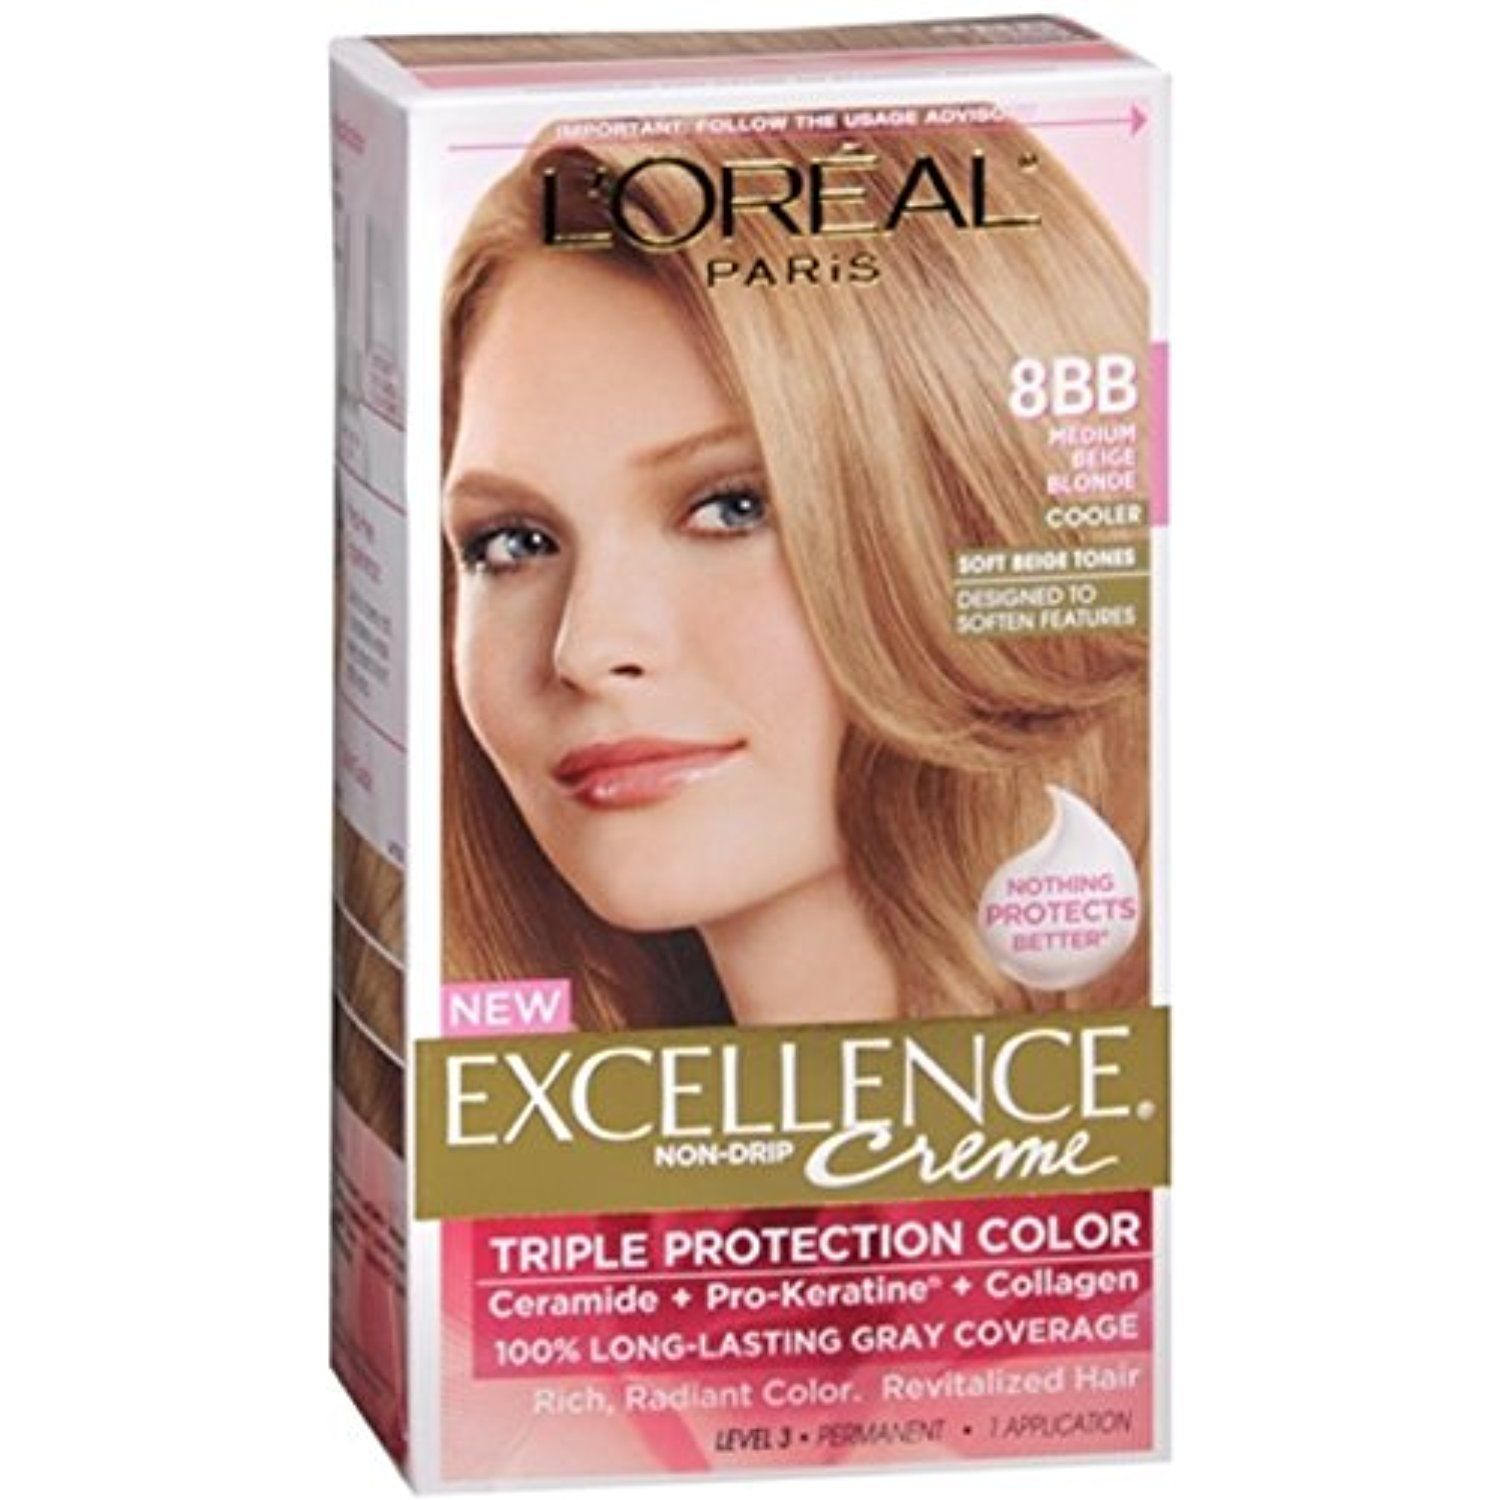 L Oreal Excellence Creme 8bb Medium Beige Blonde Cooler 1 Each